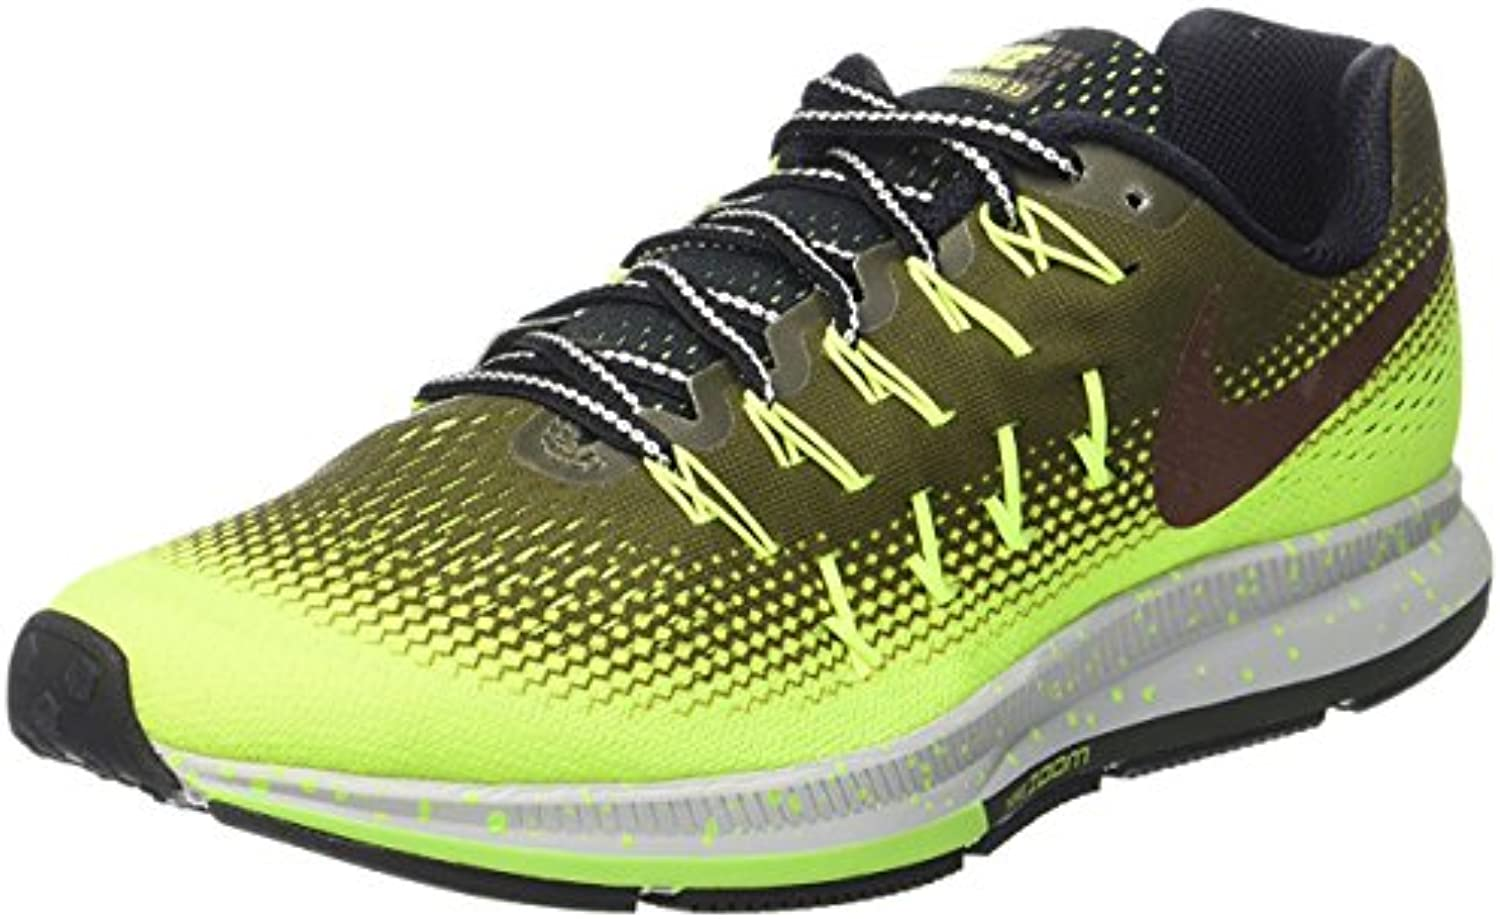 Nike Air Zoom Pegasus 33 Shield 849564-300 - Zapatillas de Trail Running, Hombre